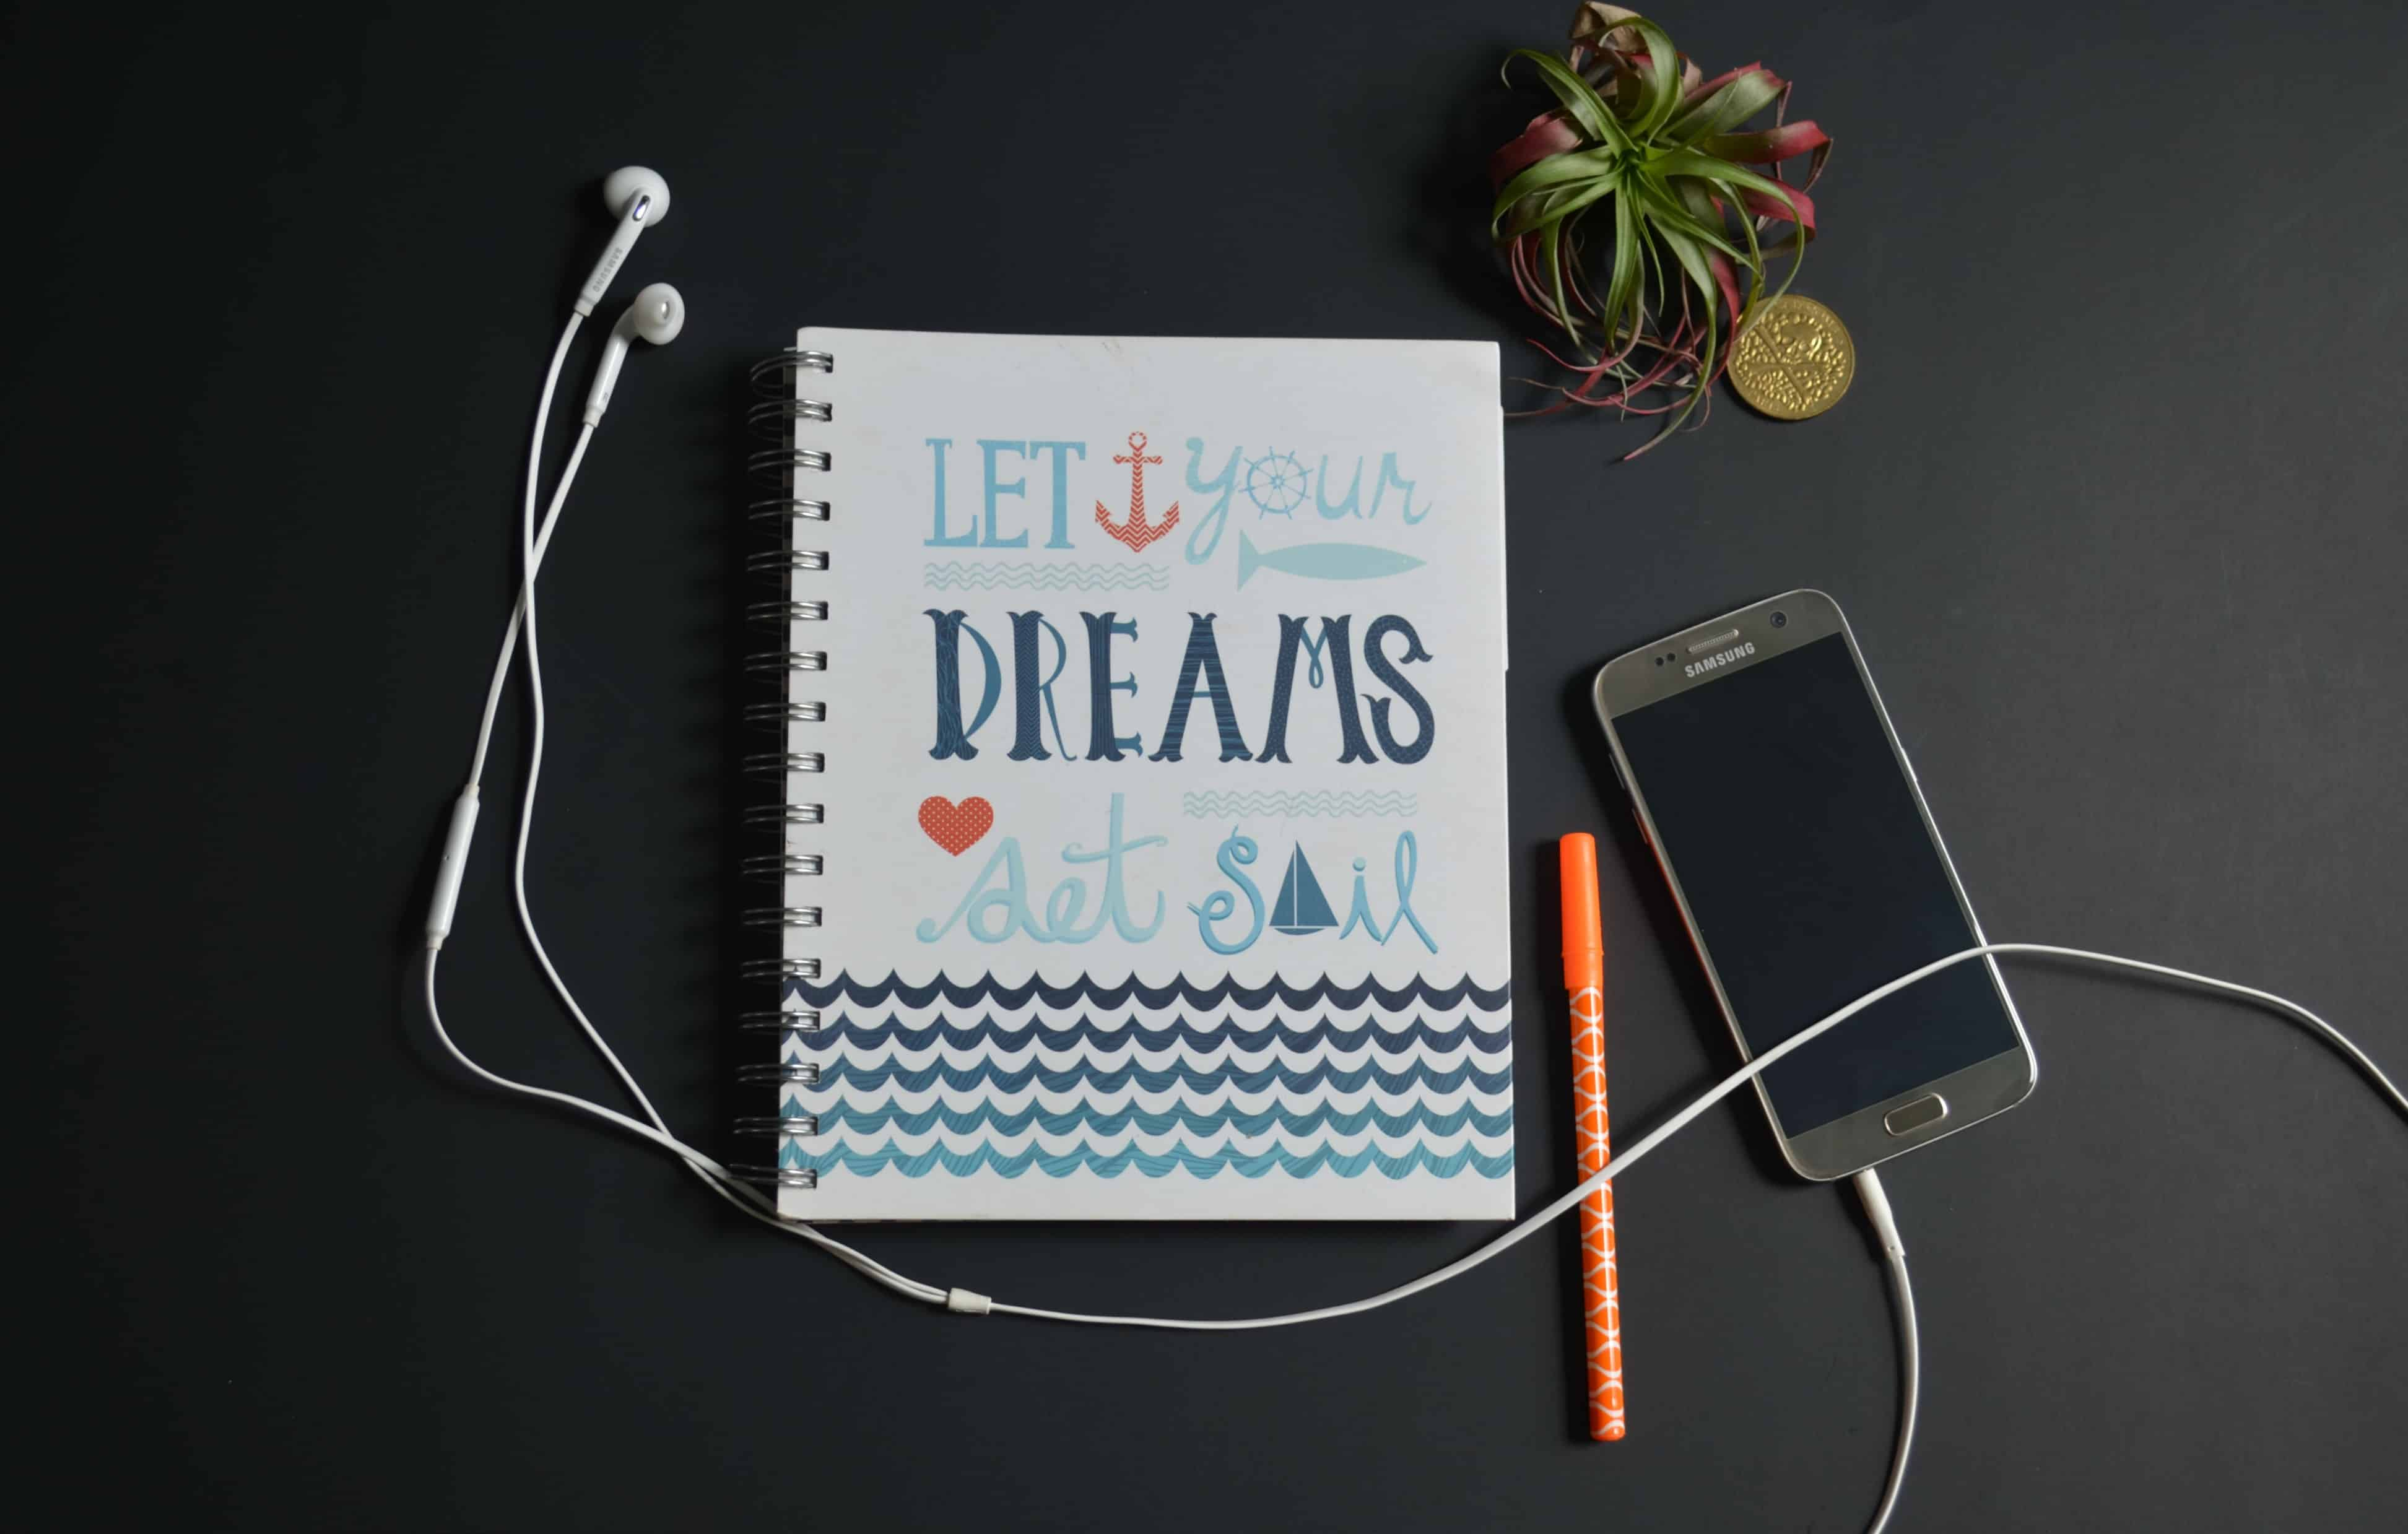 Goals and dreams are not equivalent but creating goals is essential to achieve your dreams. A primer about the importance of setting goals so dreams don't stay wishes.